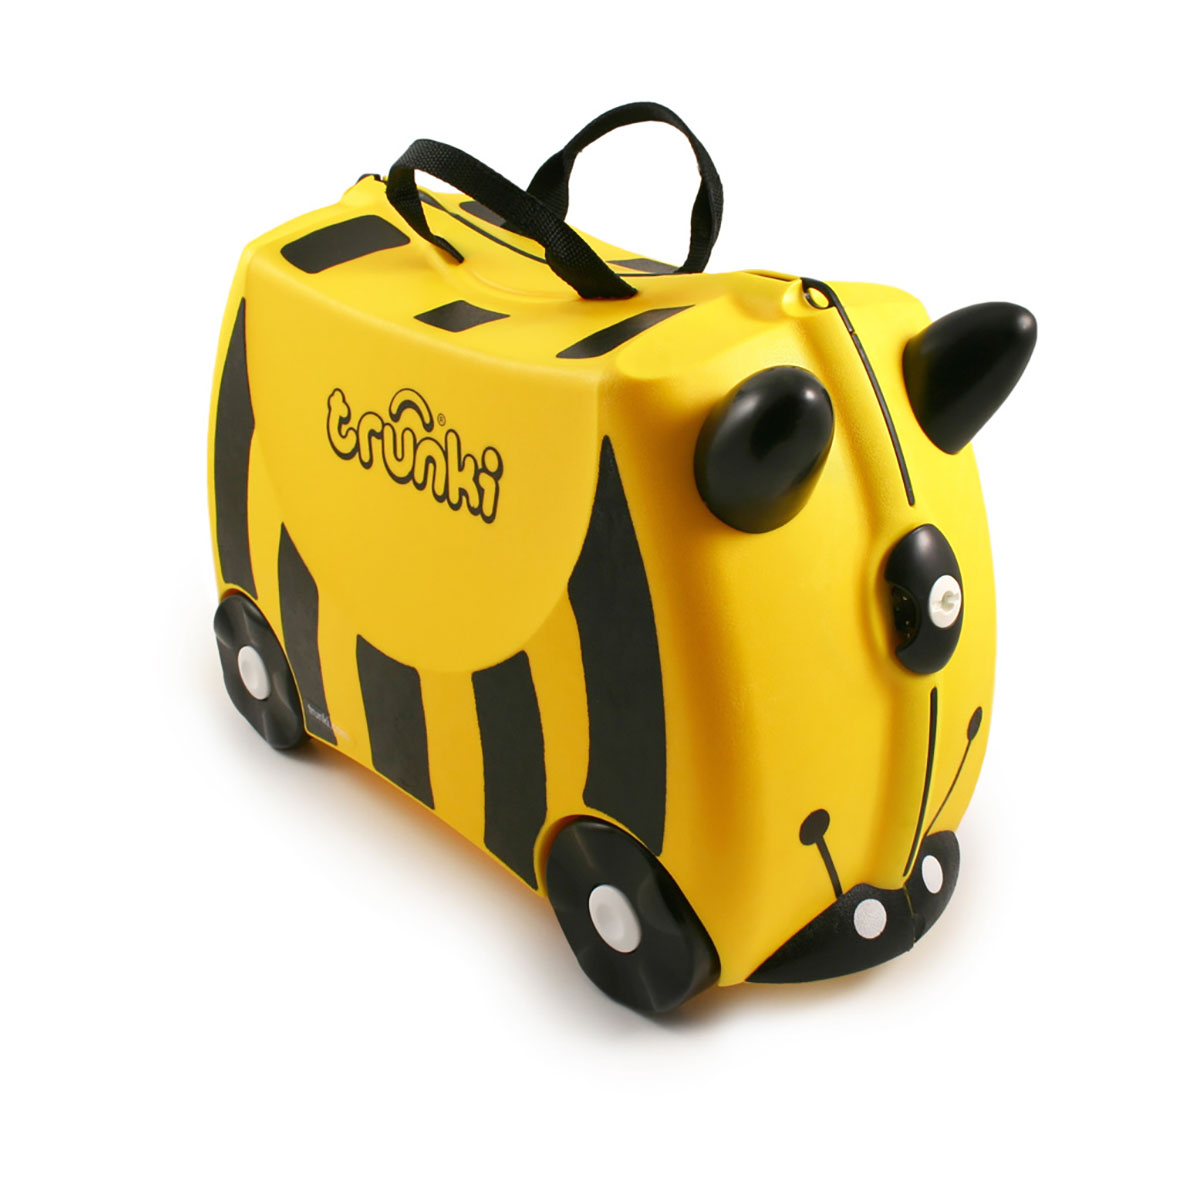 Valiza pentru copii Ride-On Bernard Trunki, Galben, 46 cm imagine 2021